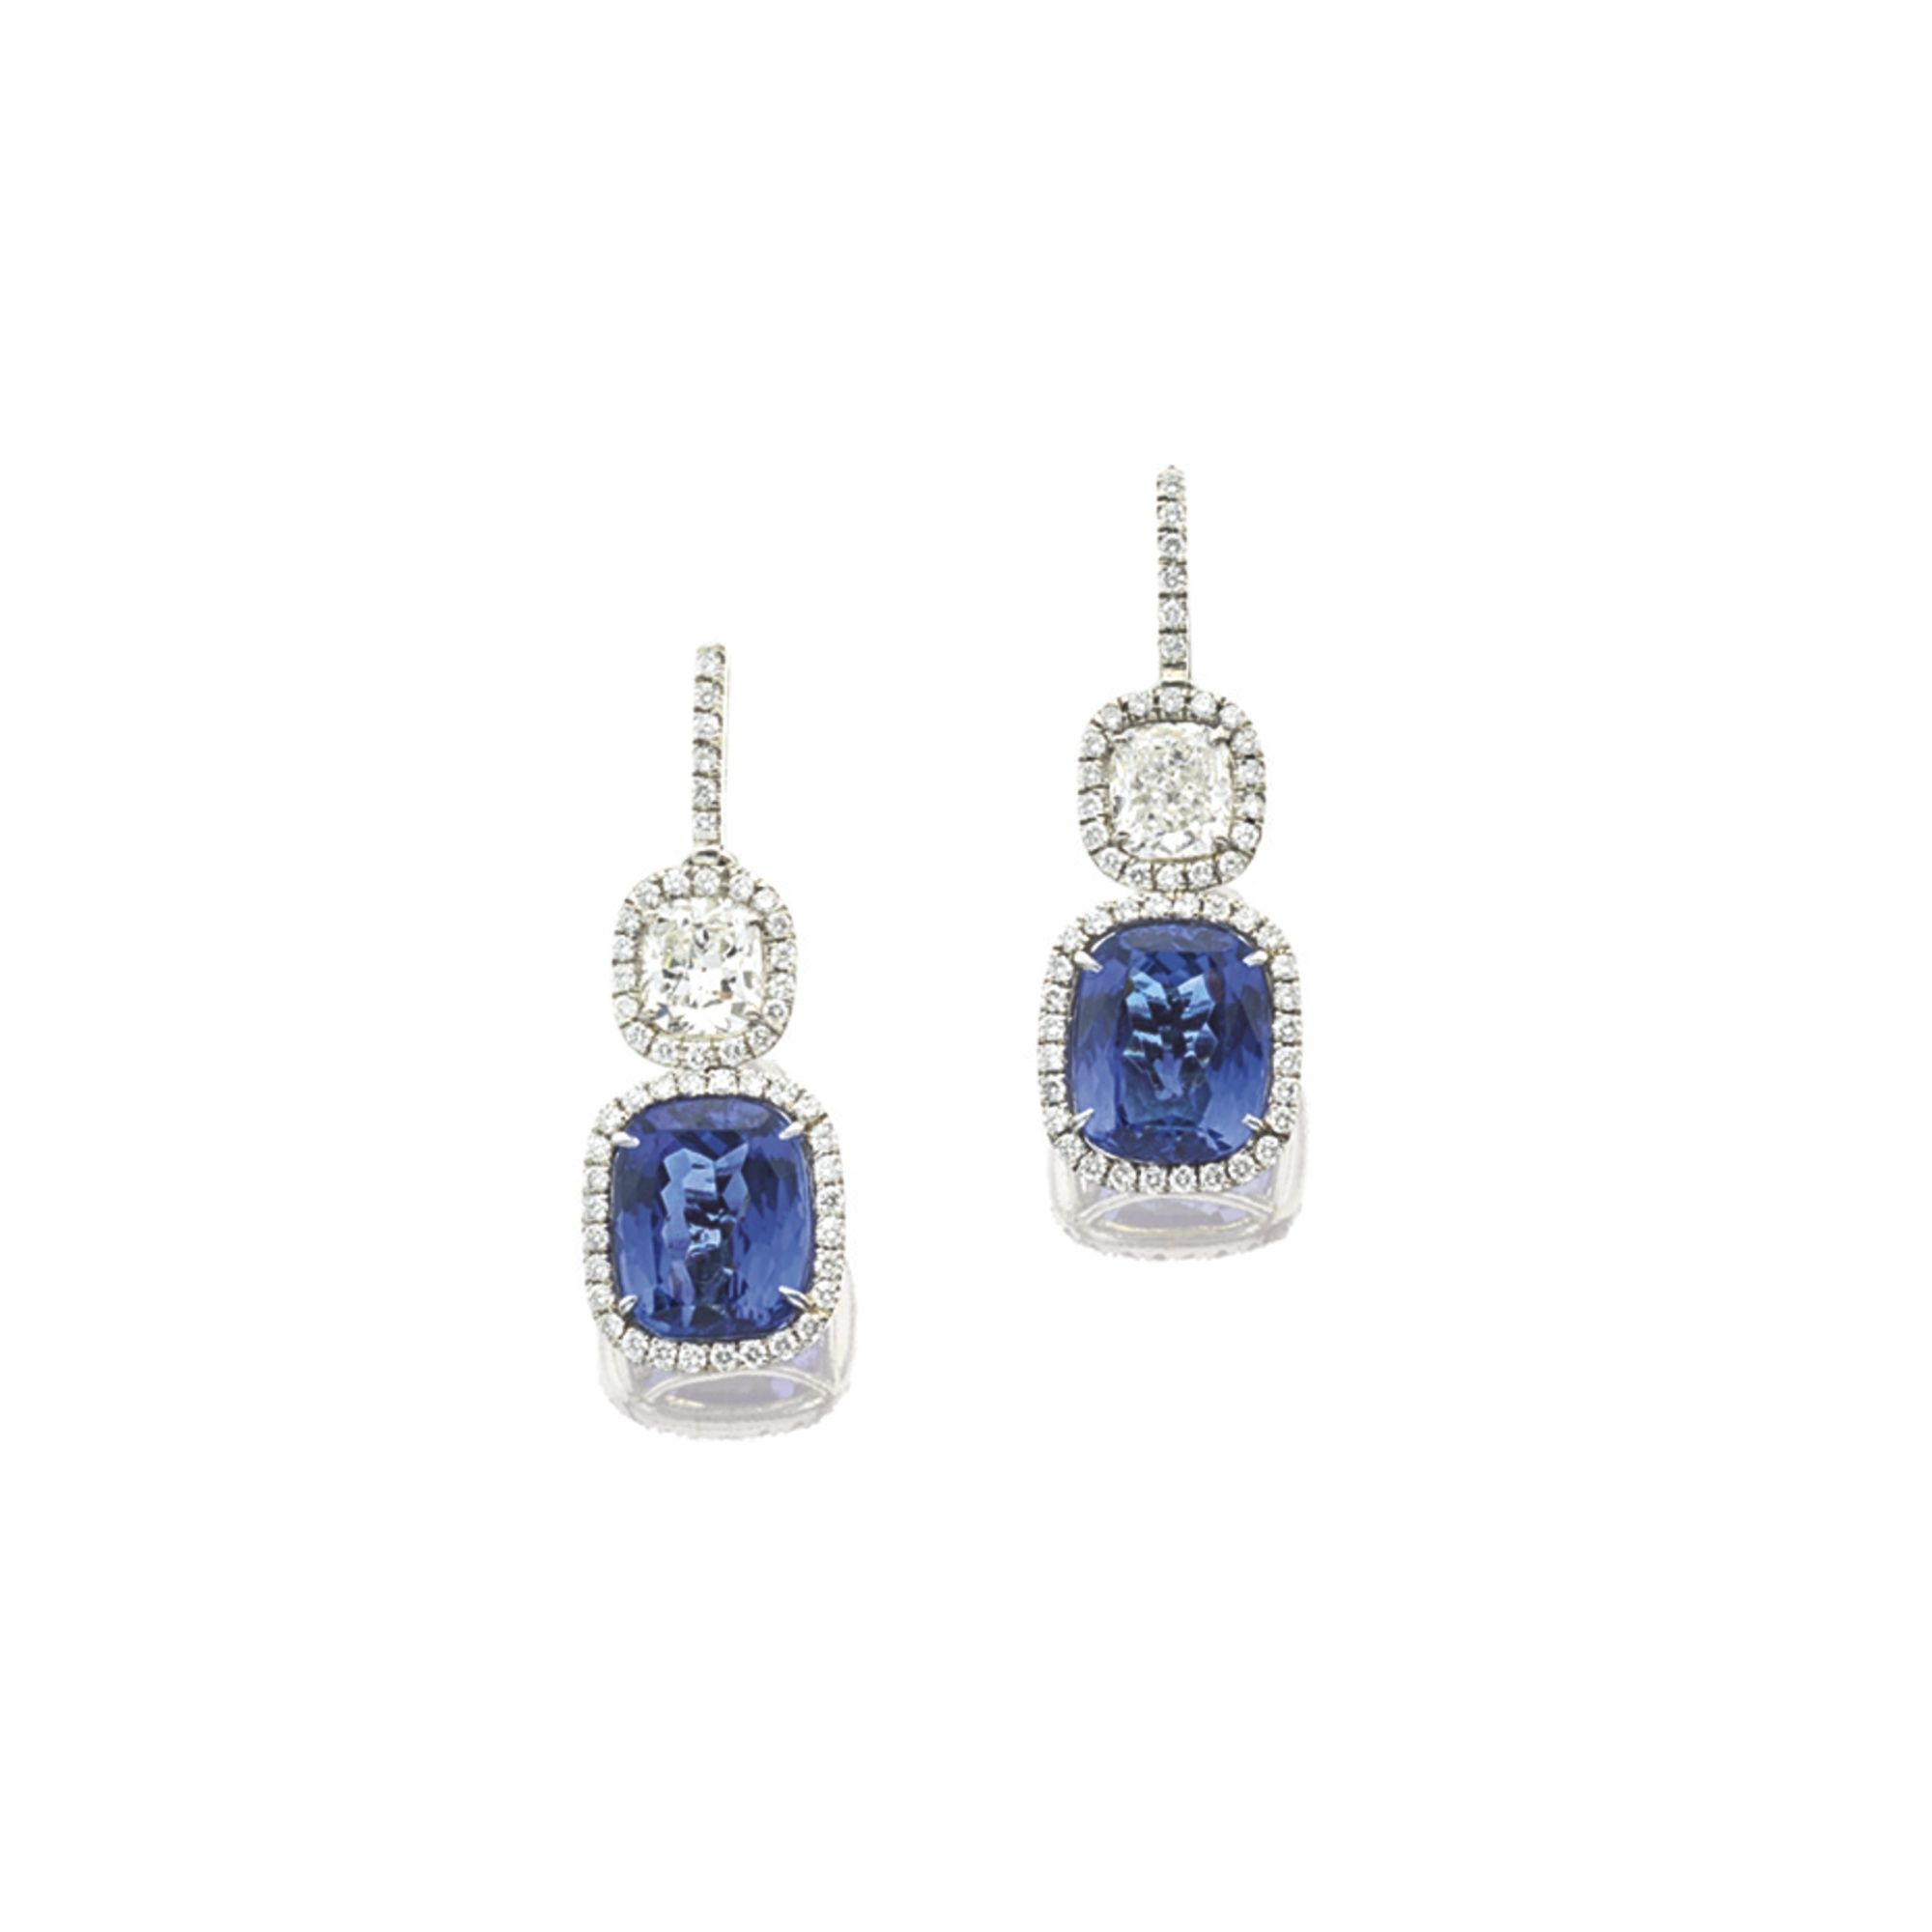 Pair of Tanzanite and Diamond Pendent Earrings Tiffany & Co Each